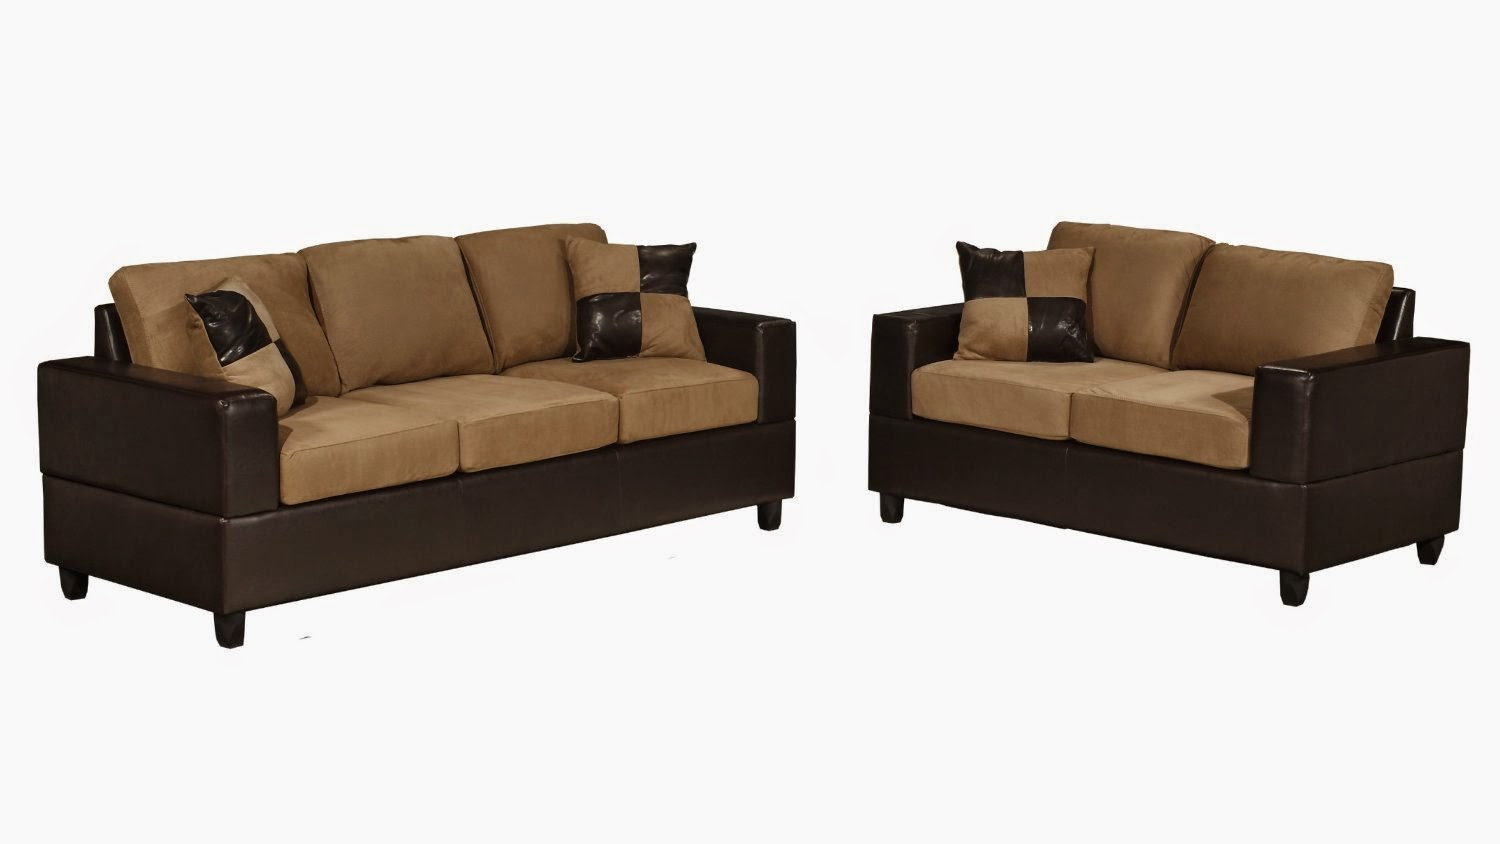 Sofa For Sale Sofa Sets For Sale Leather Furniture Seattle American Leather  Sleeper Sofa Seattle